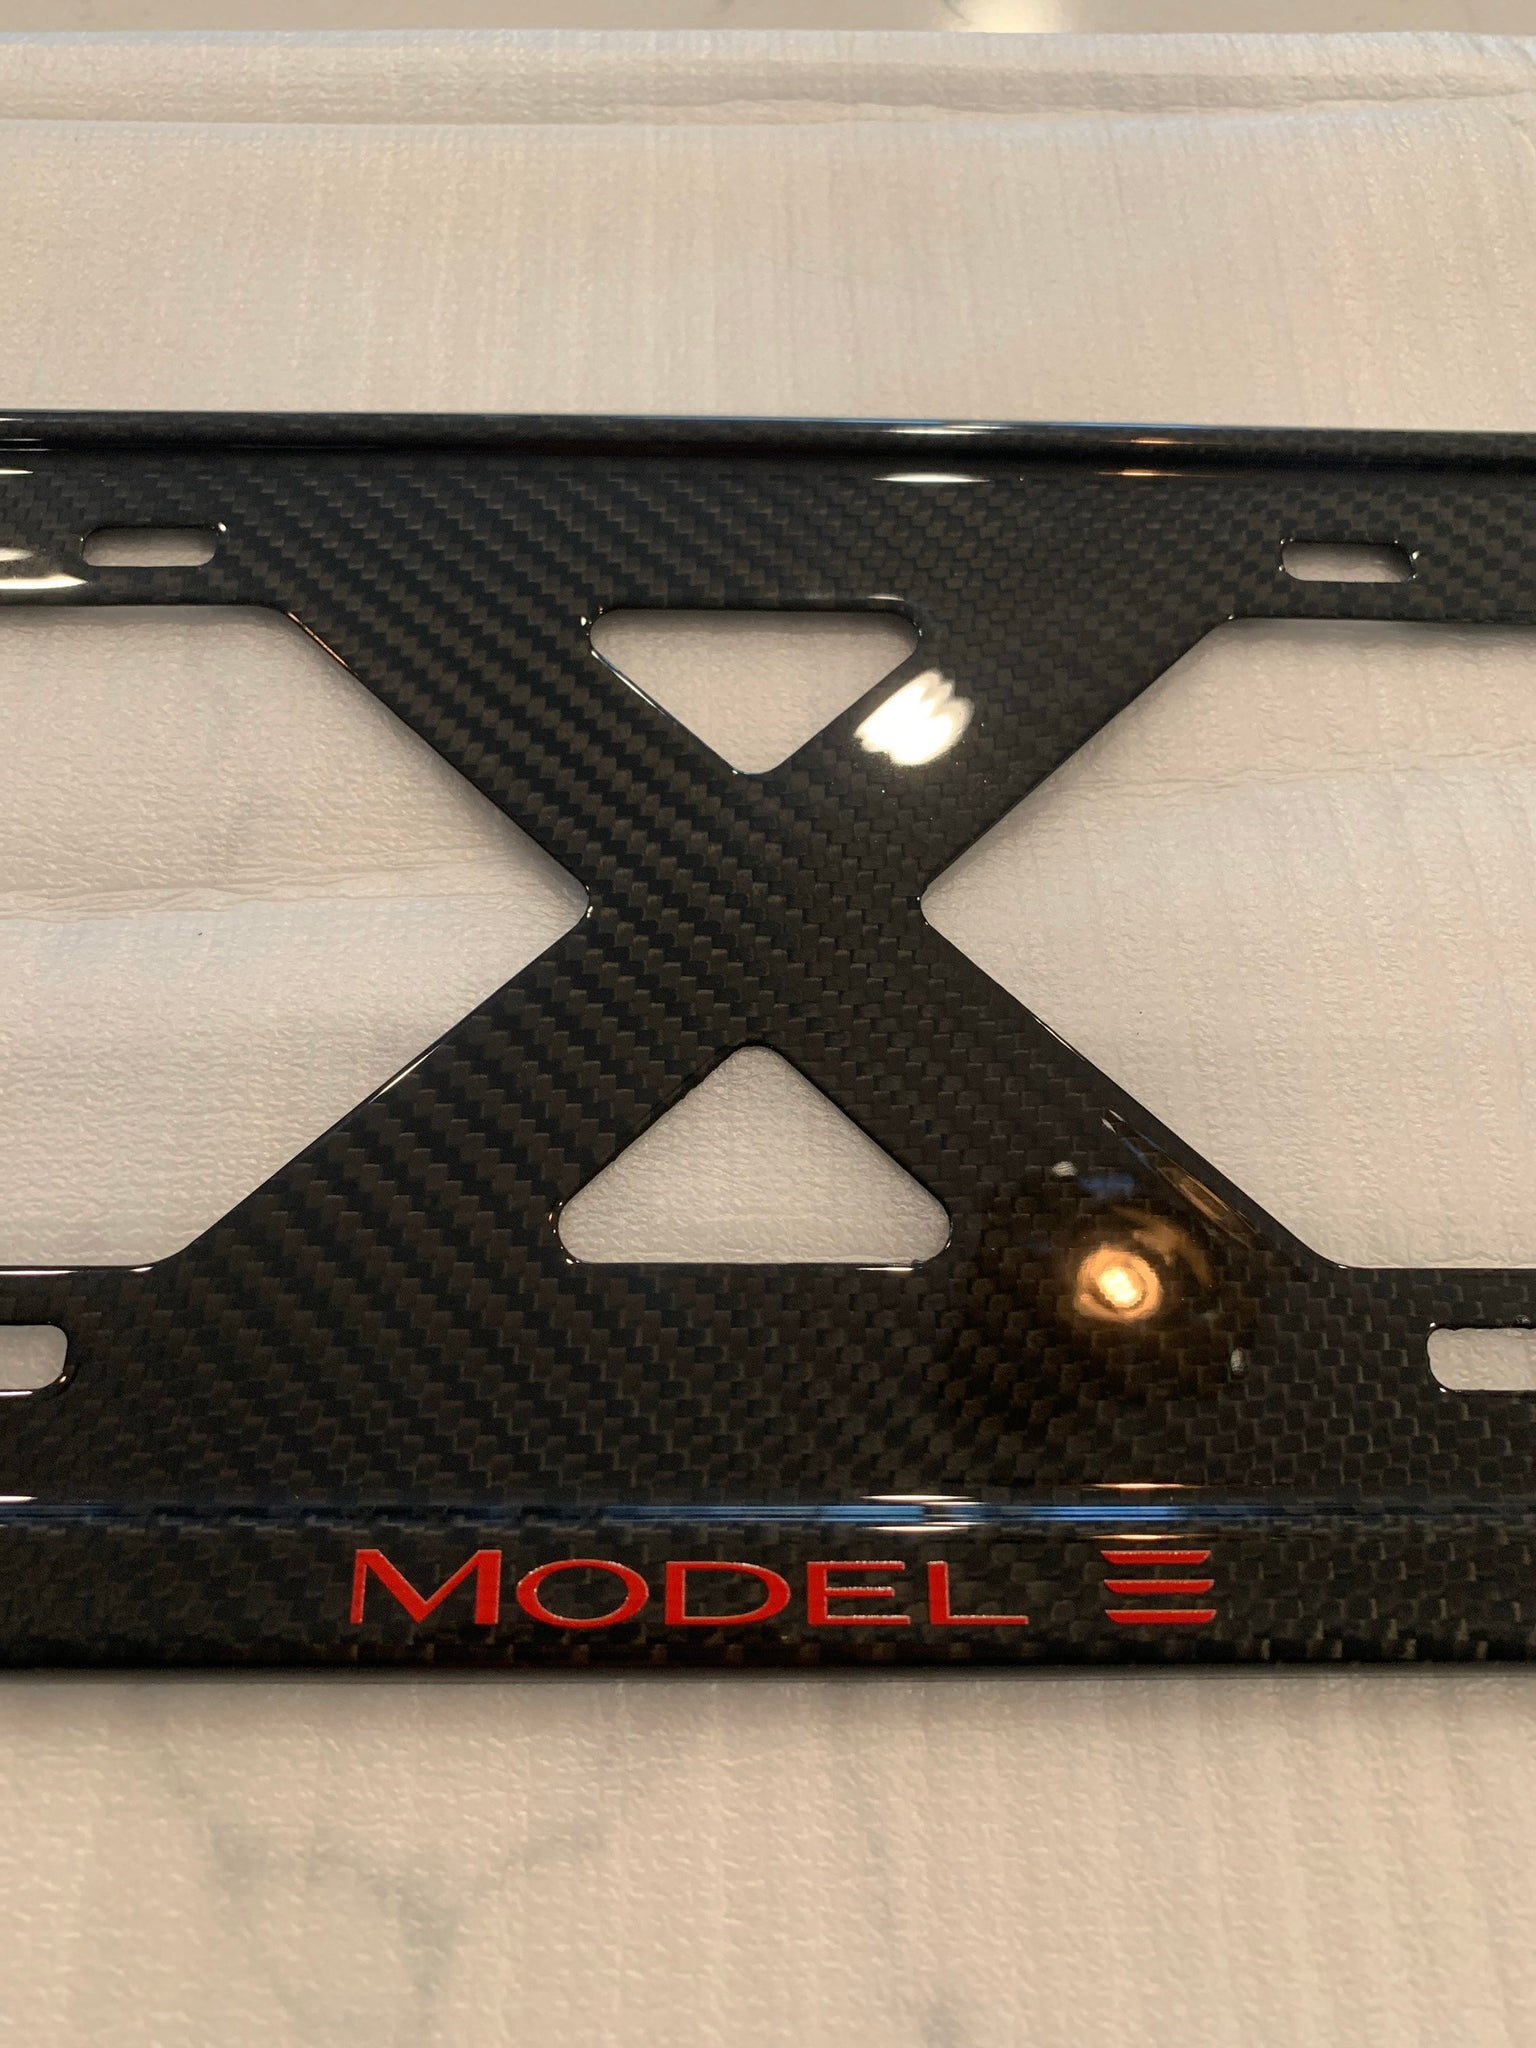 Model 3 RED X Slim Tesla License Plate Frame, 100% Carbon Fiber, No Decals, Full Warranty, Free Ship, Limited Run, Handmade from Cali